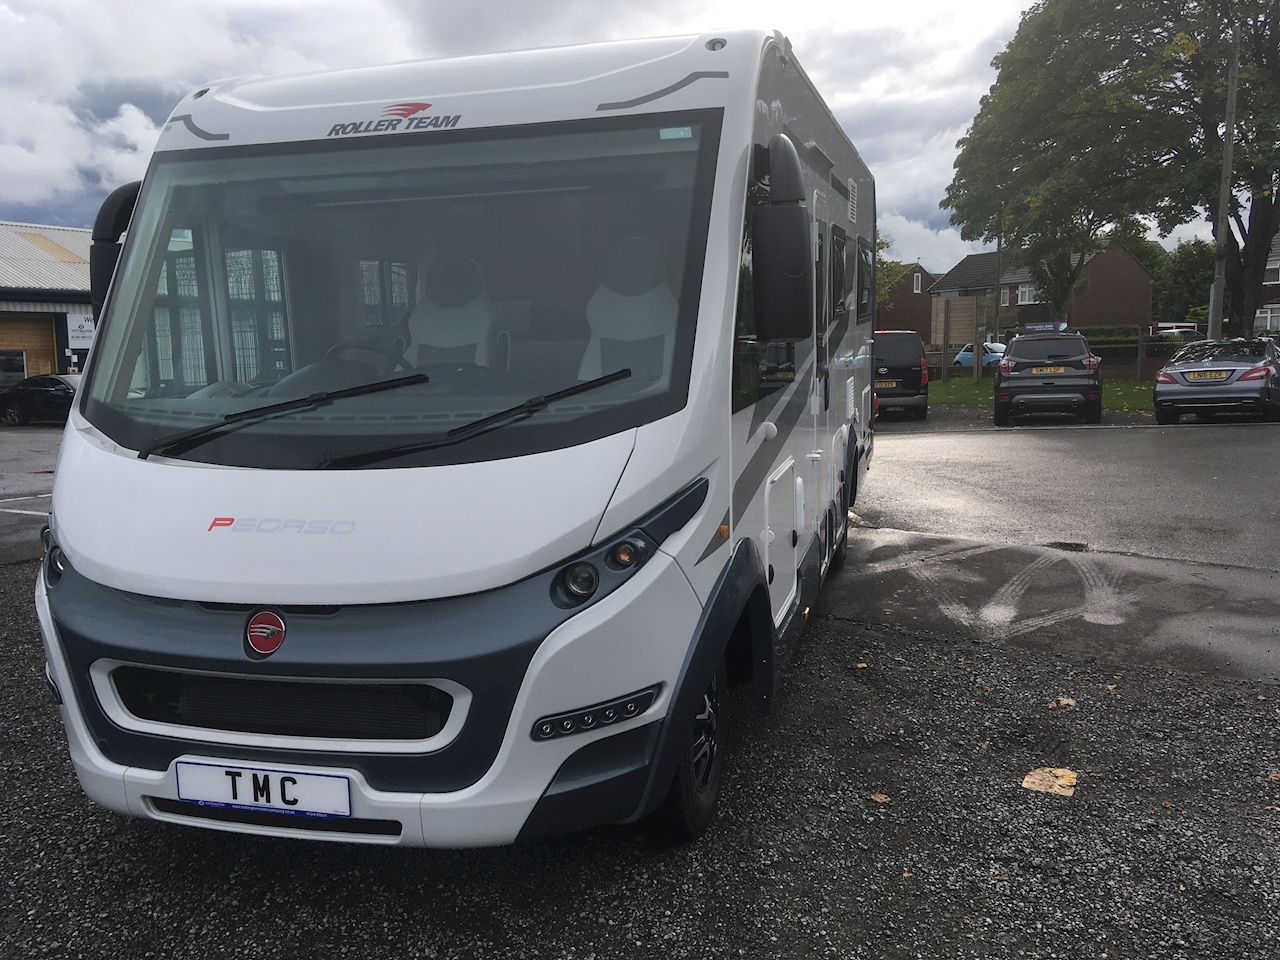 Rollerteam Pegaso  745 (New 2021 Model) 2300 Motorhome Automatic Diesel